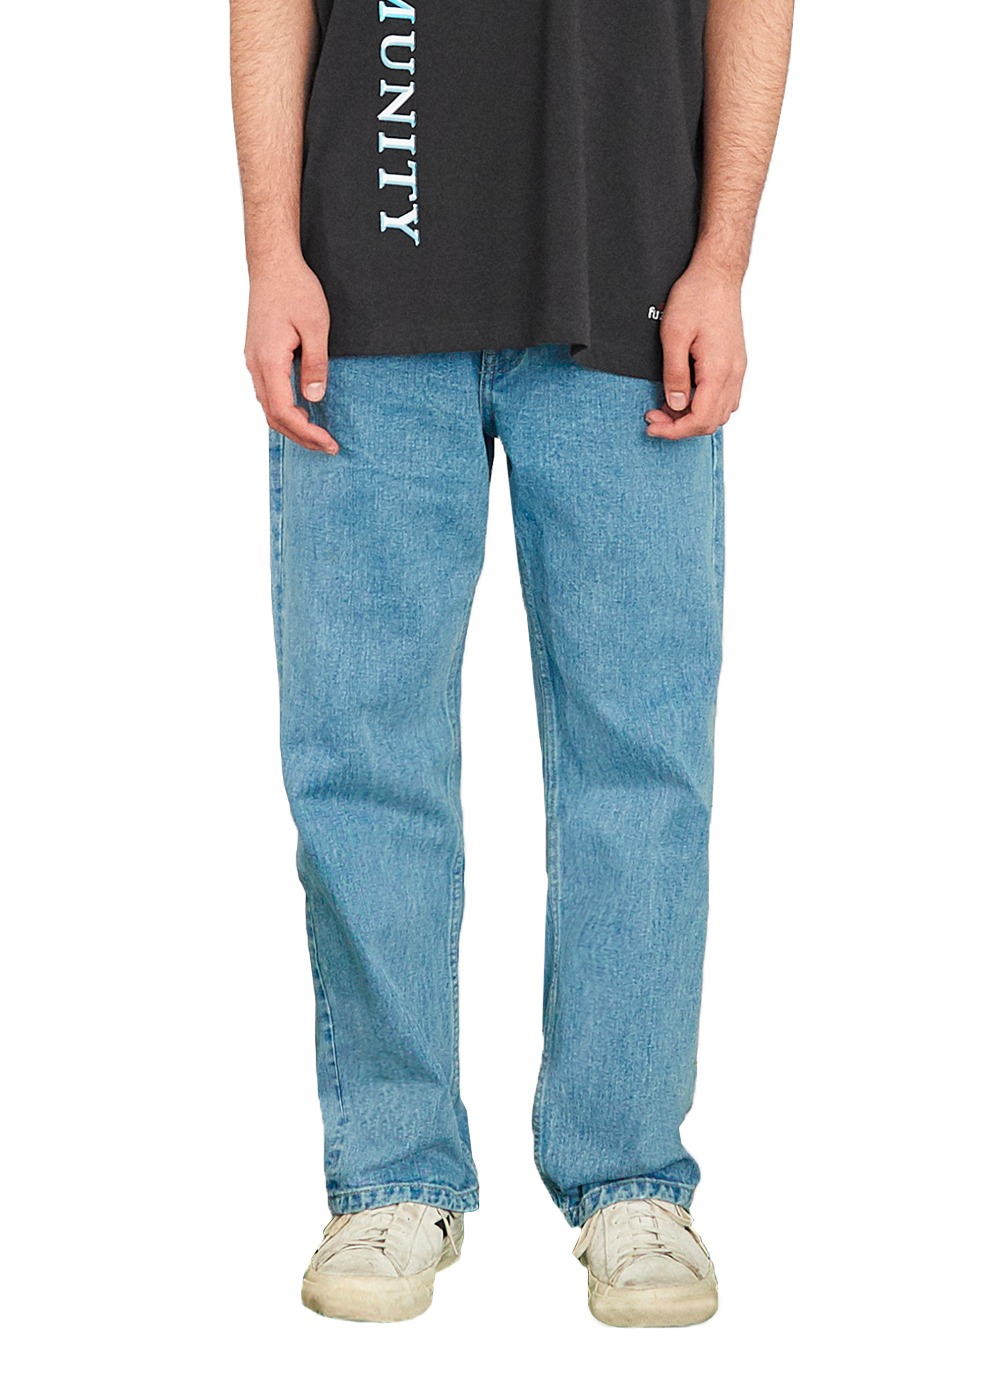 FUZZ 001 STONE WASHED JEAN light blue